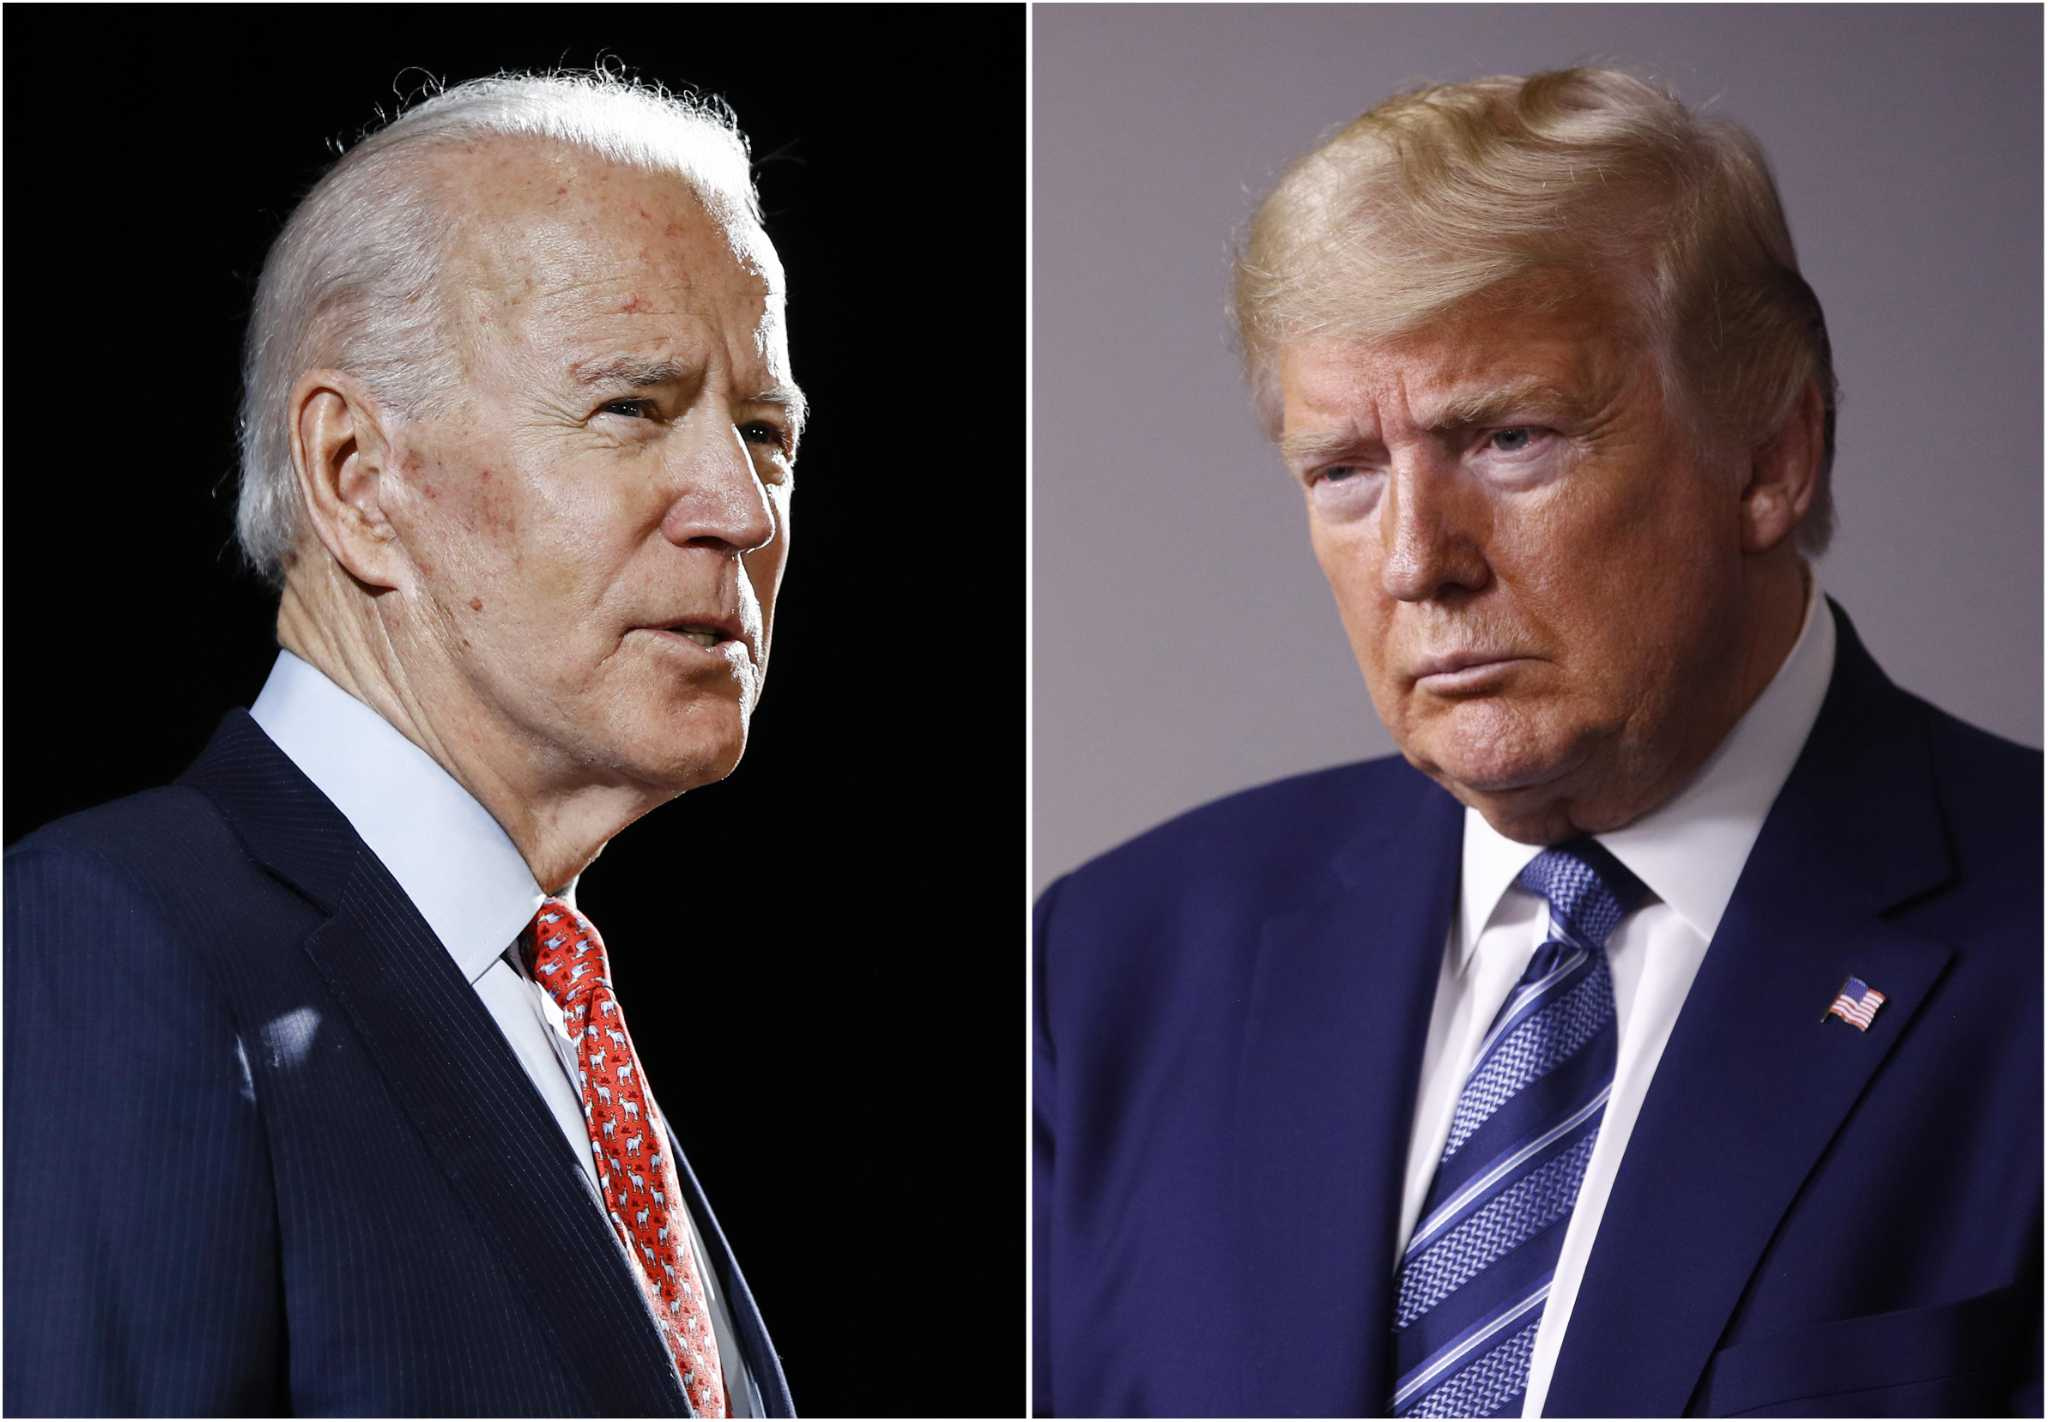 Trump, Biden in virtual tie in Texas in new poll - HoustonChronicle.com